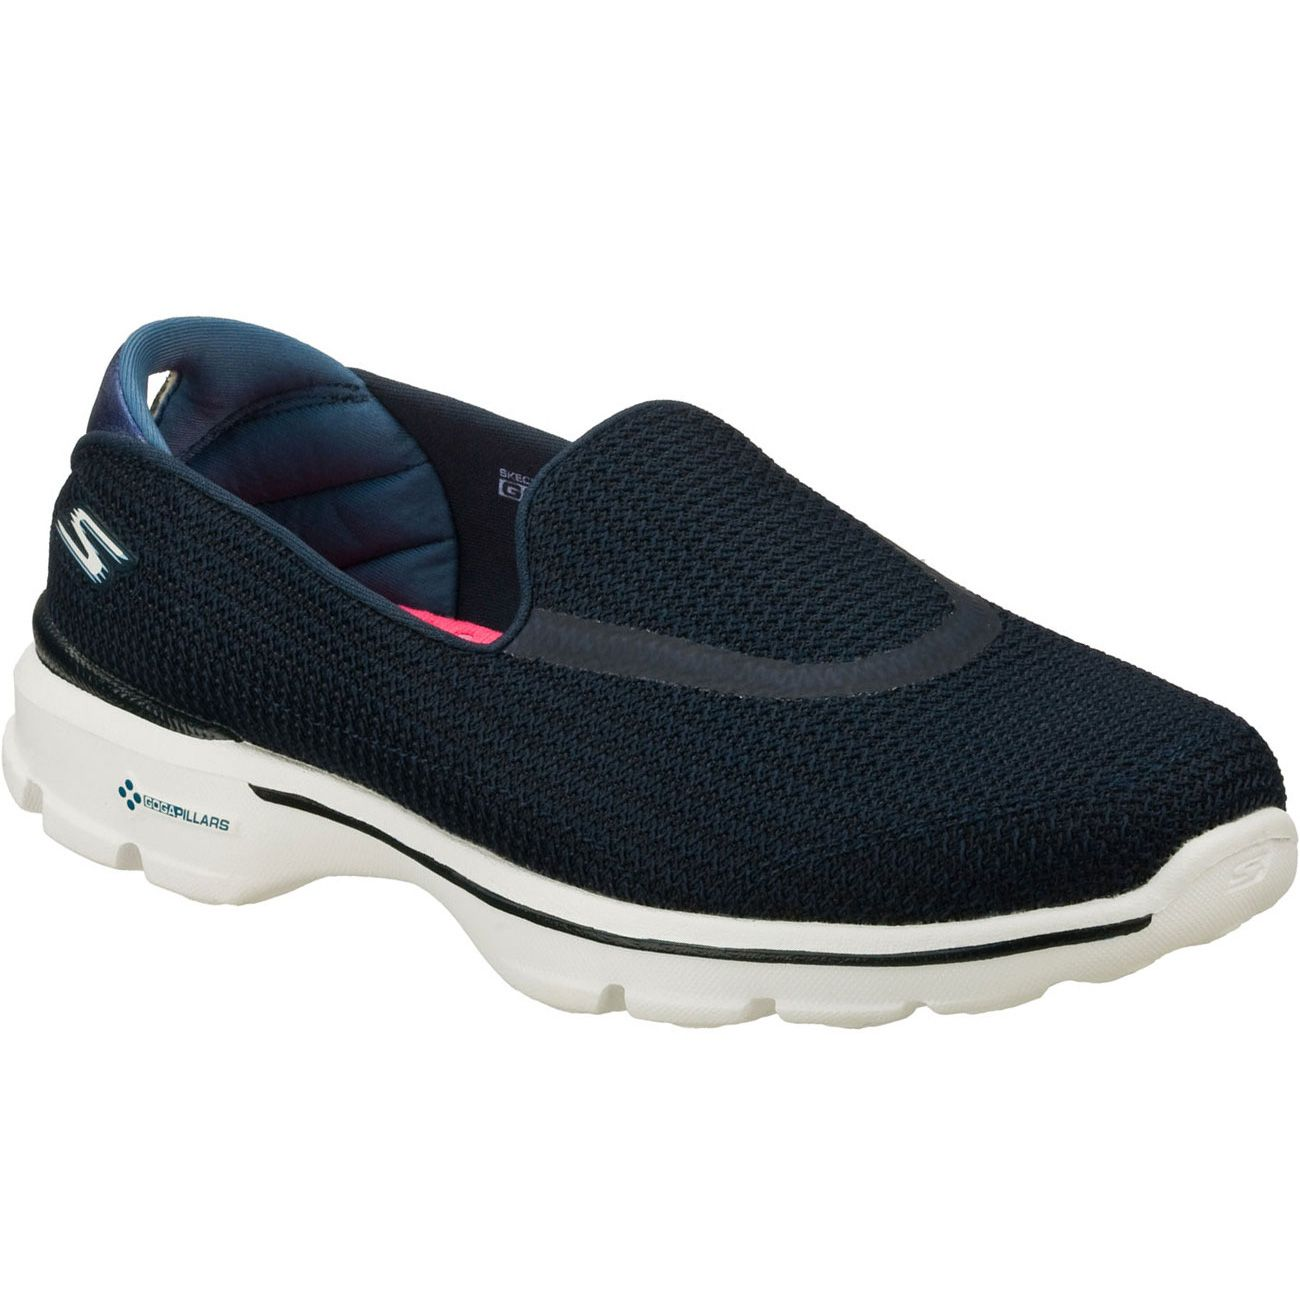 skechers go walk 3 walking shoes